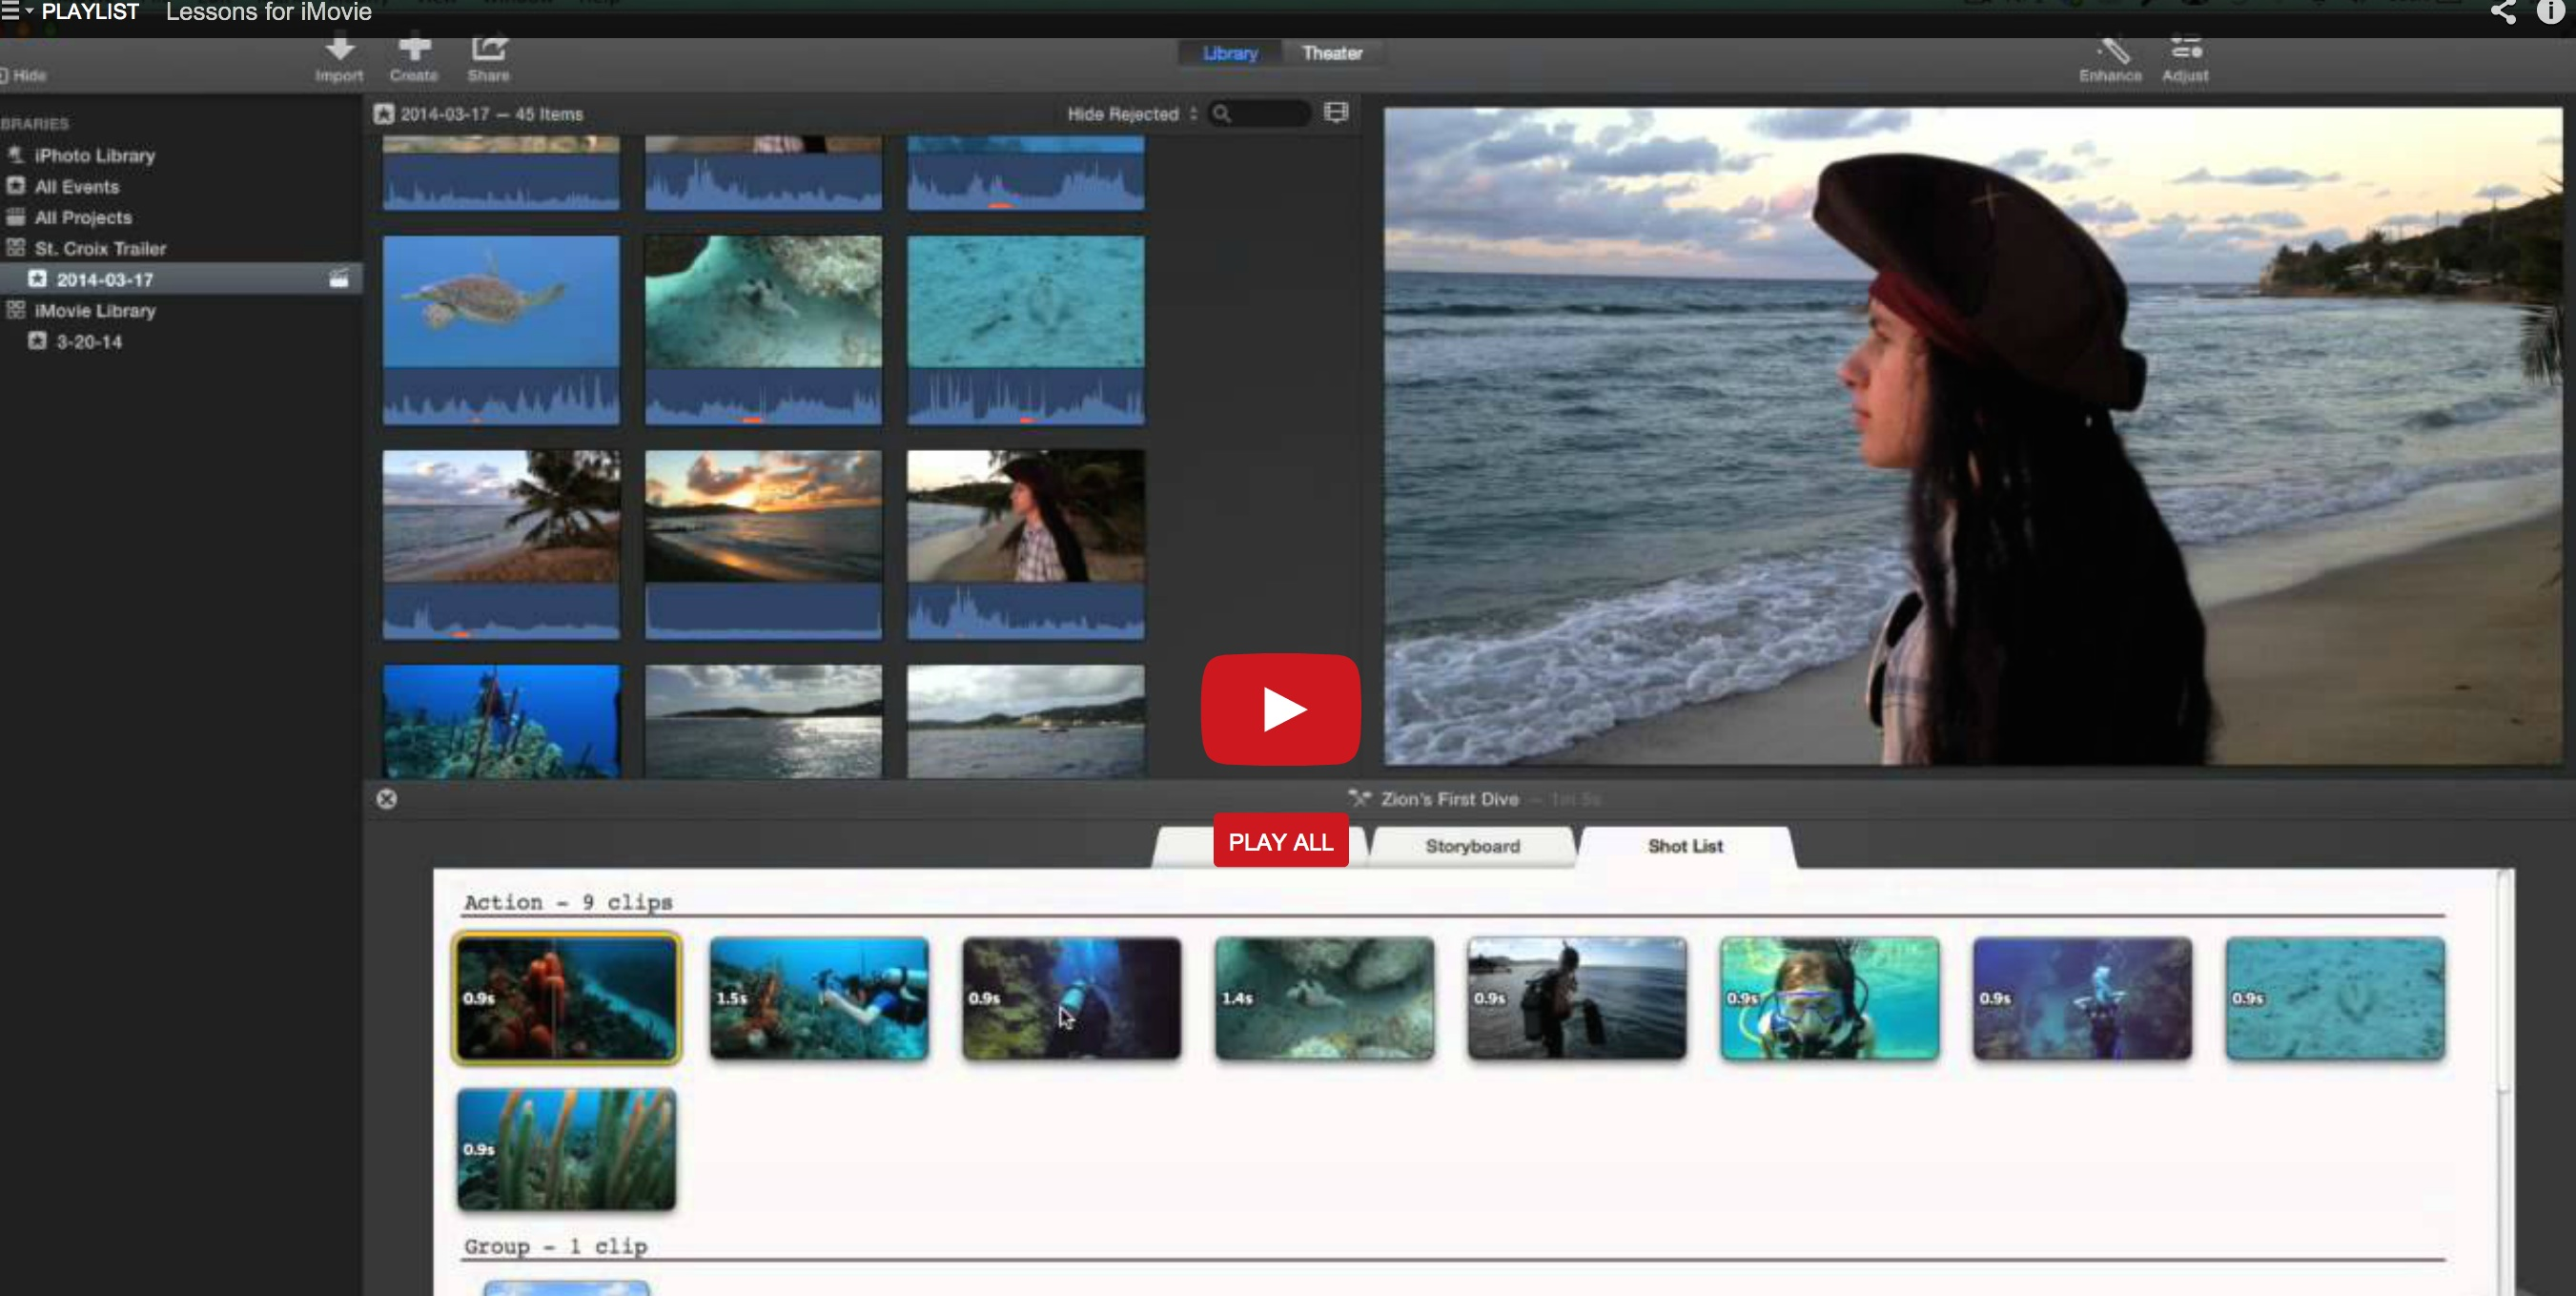 Ripple Training for iMovie is a Winner